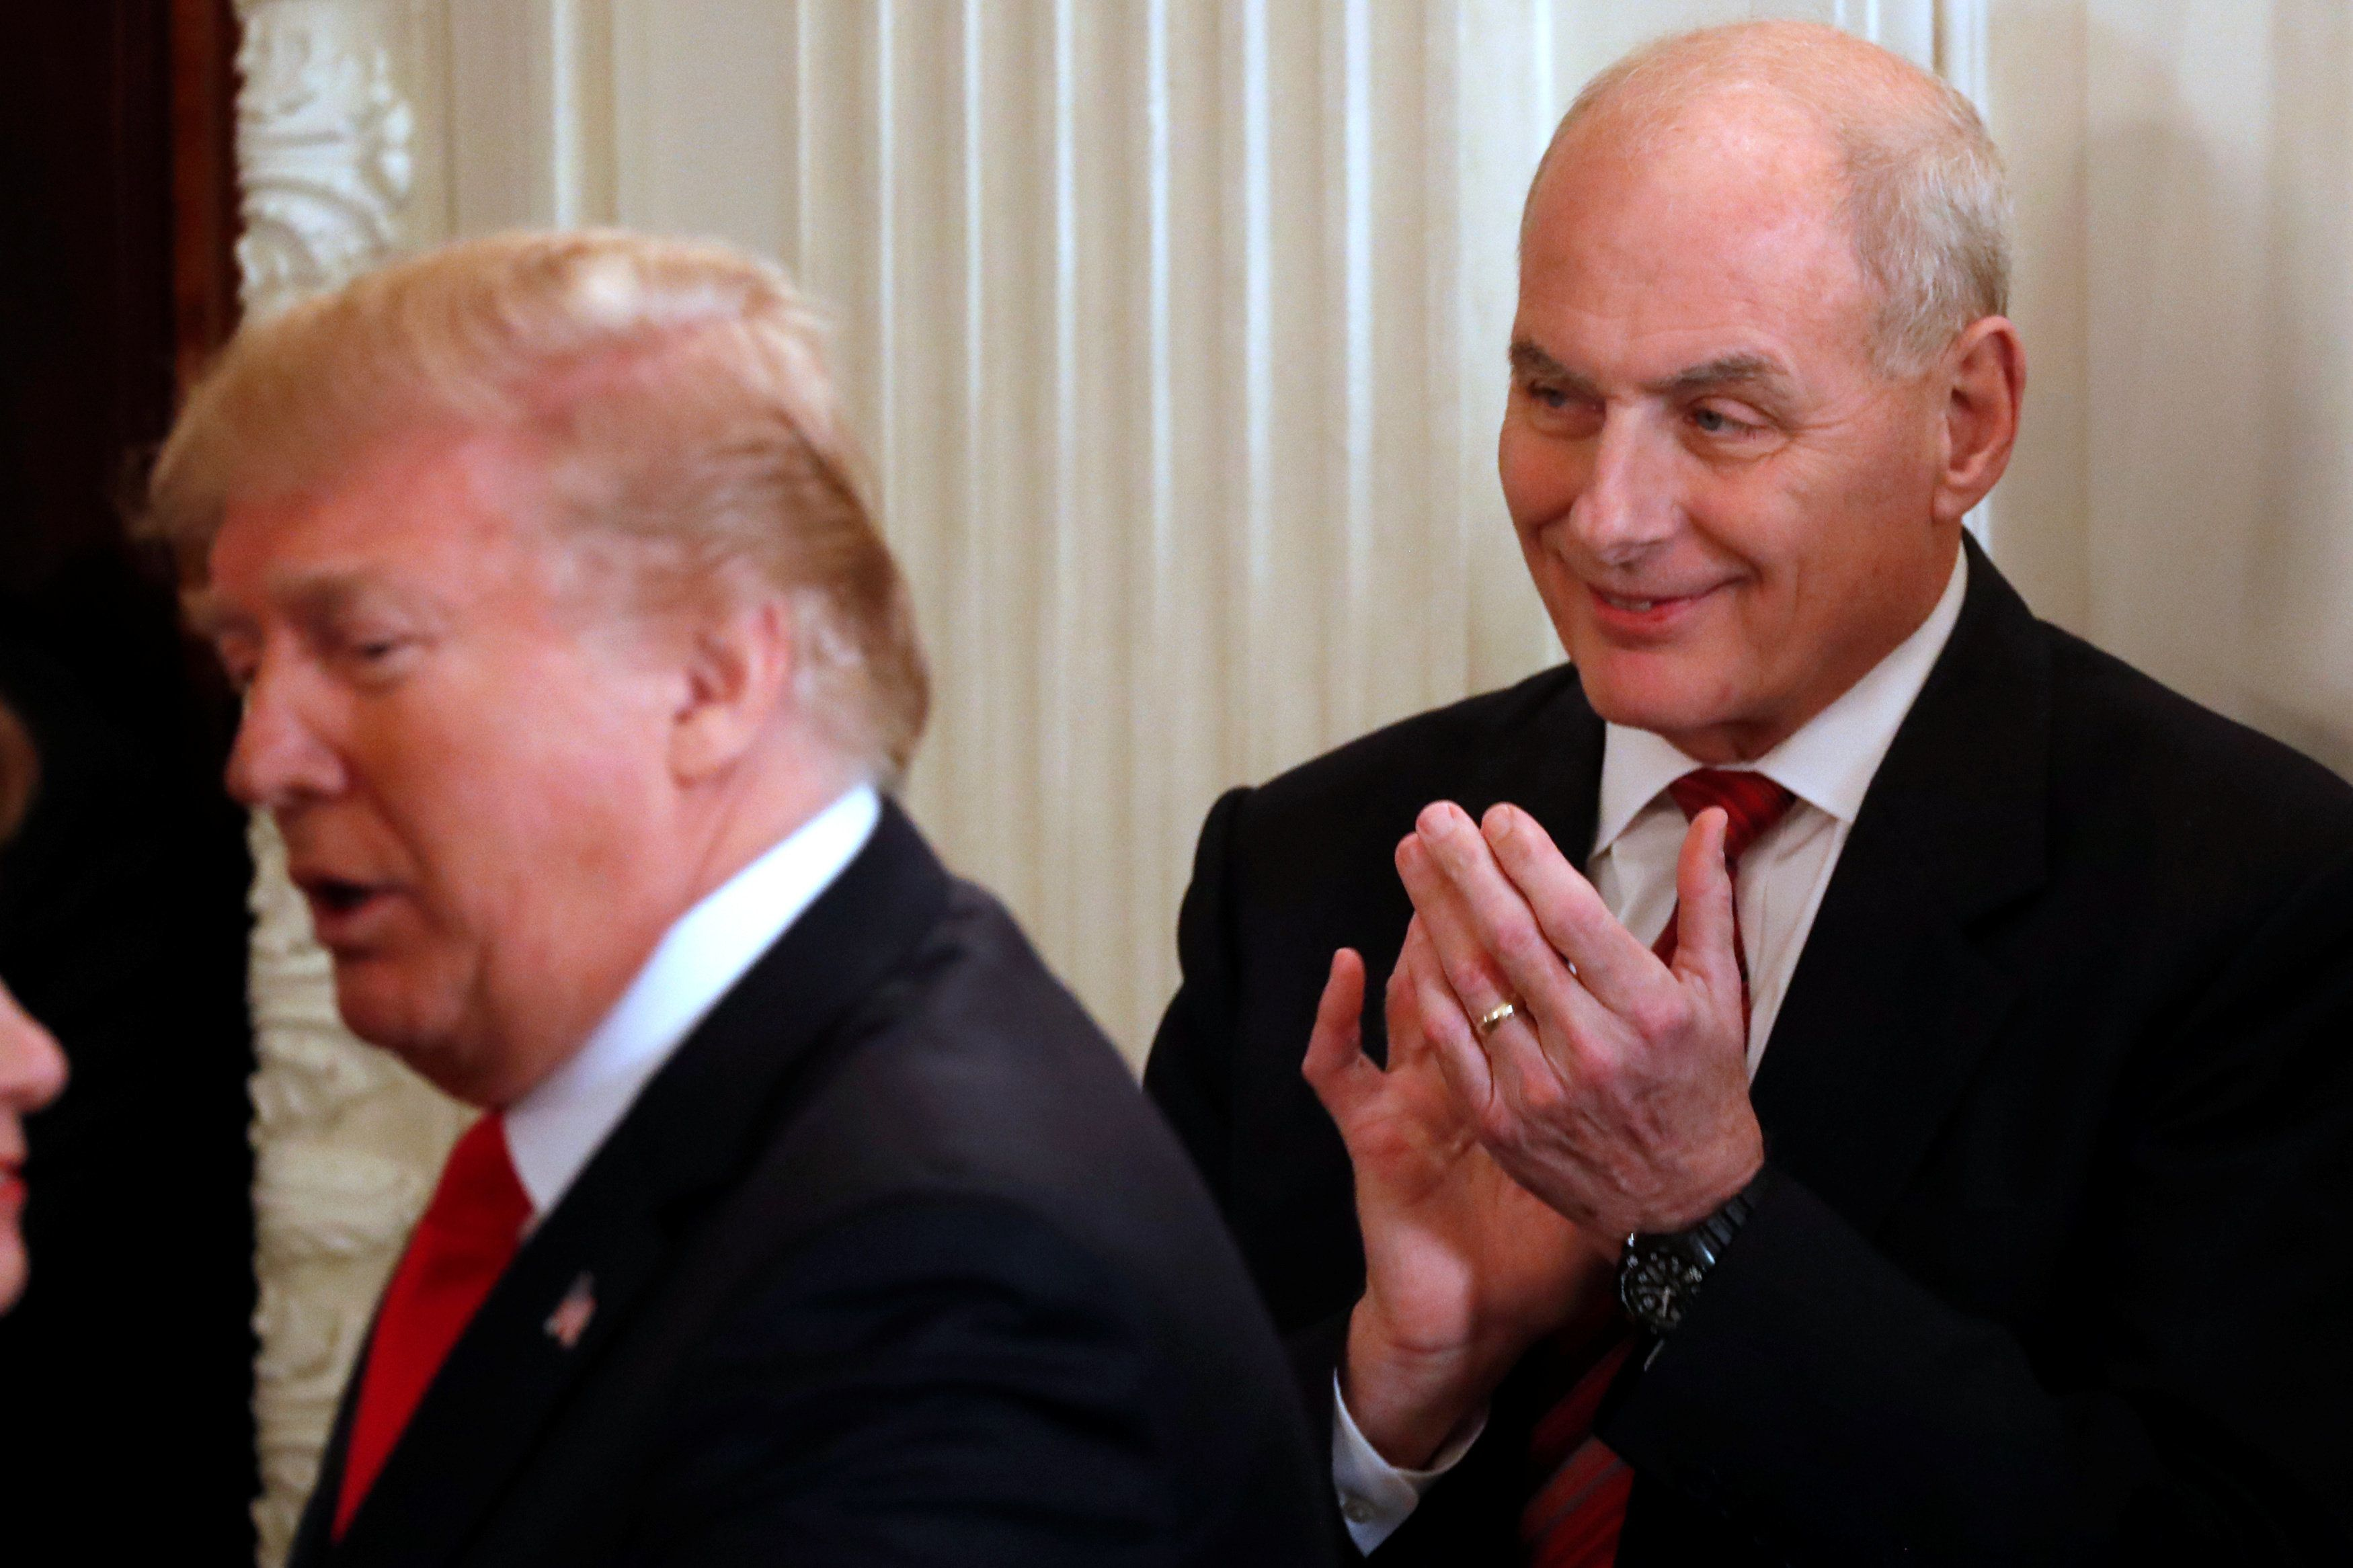 White House Chief of Staff John Kelly (R) applauds as U.S. President Donald Trump arrives to hold a discussion about school shootings with state governors from around the country at the White House in Washington, U.S. February 26, 2018.  REUTERS/Jonathan Ernst